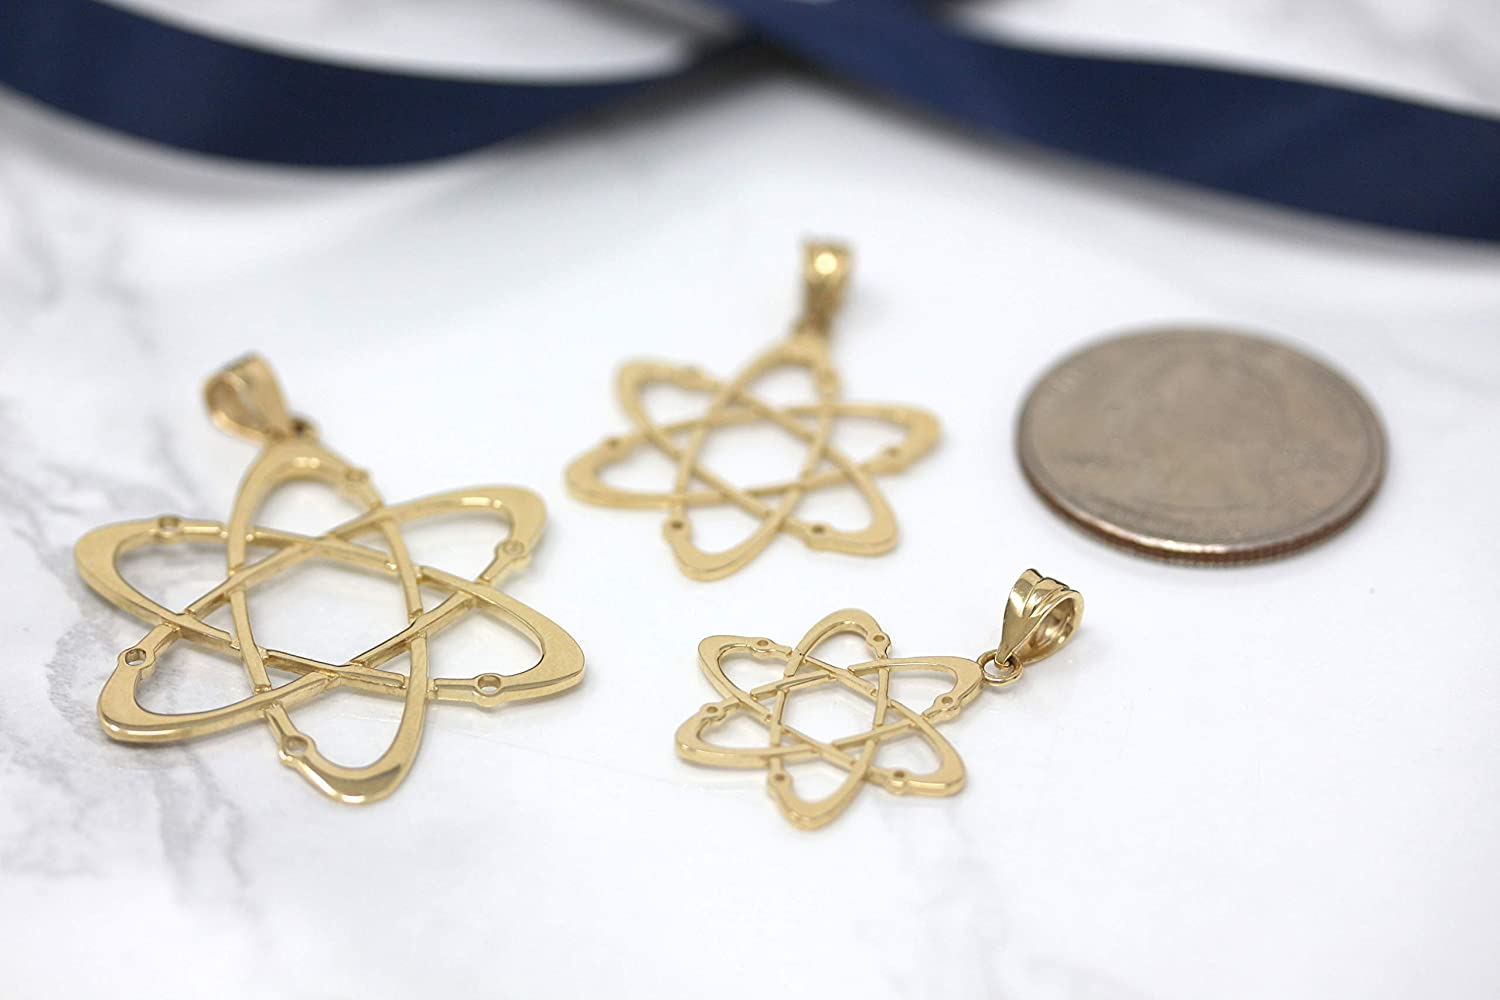 CaliRoseJewelry 10k Yellow Gold Carbon Atom Science Reversible Charm Pendant